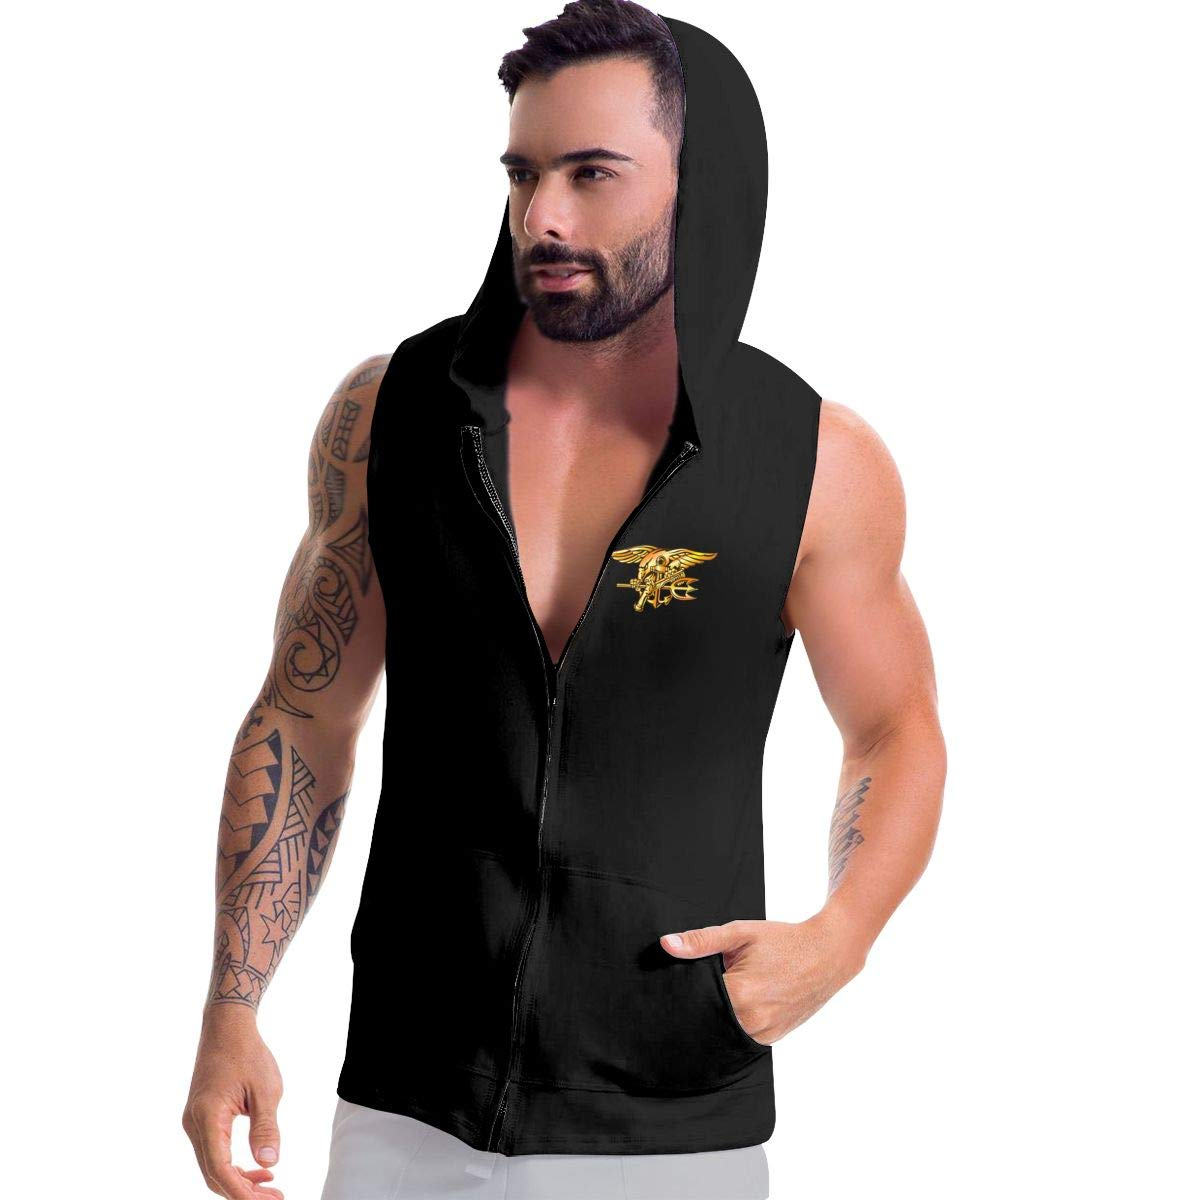 US Navy Trident Seal Mens Fashion Sleeveless Zip-up Hoodie Black with Pocket